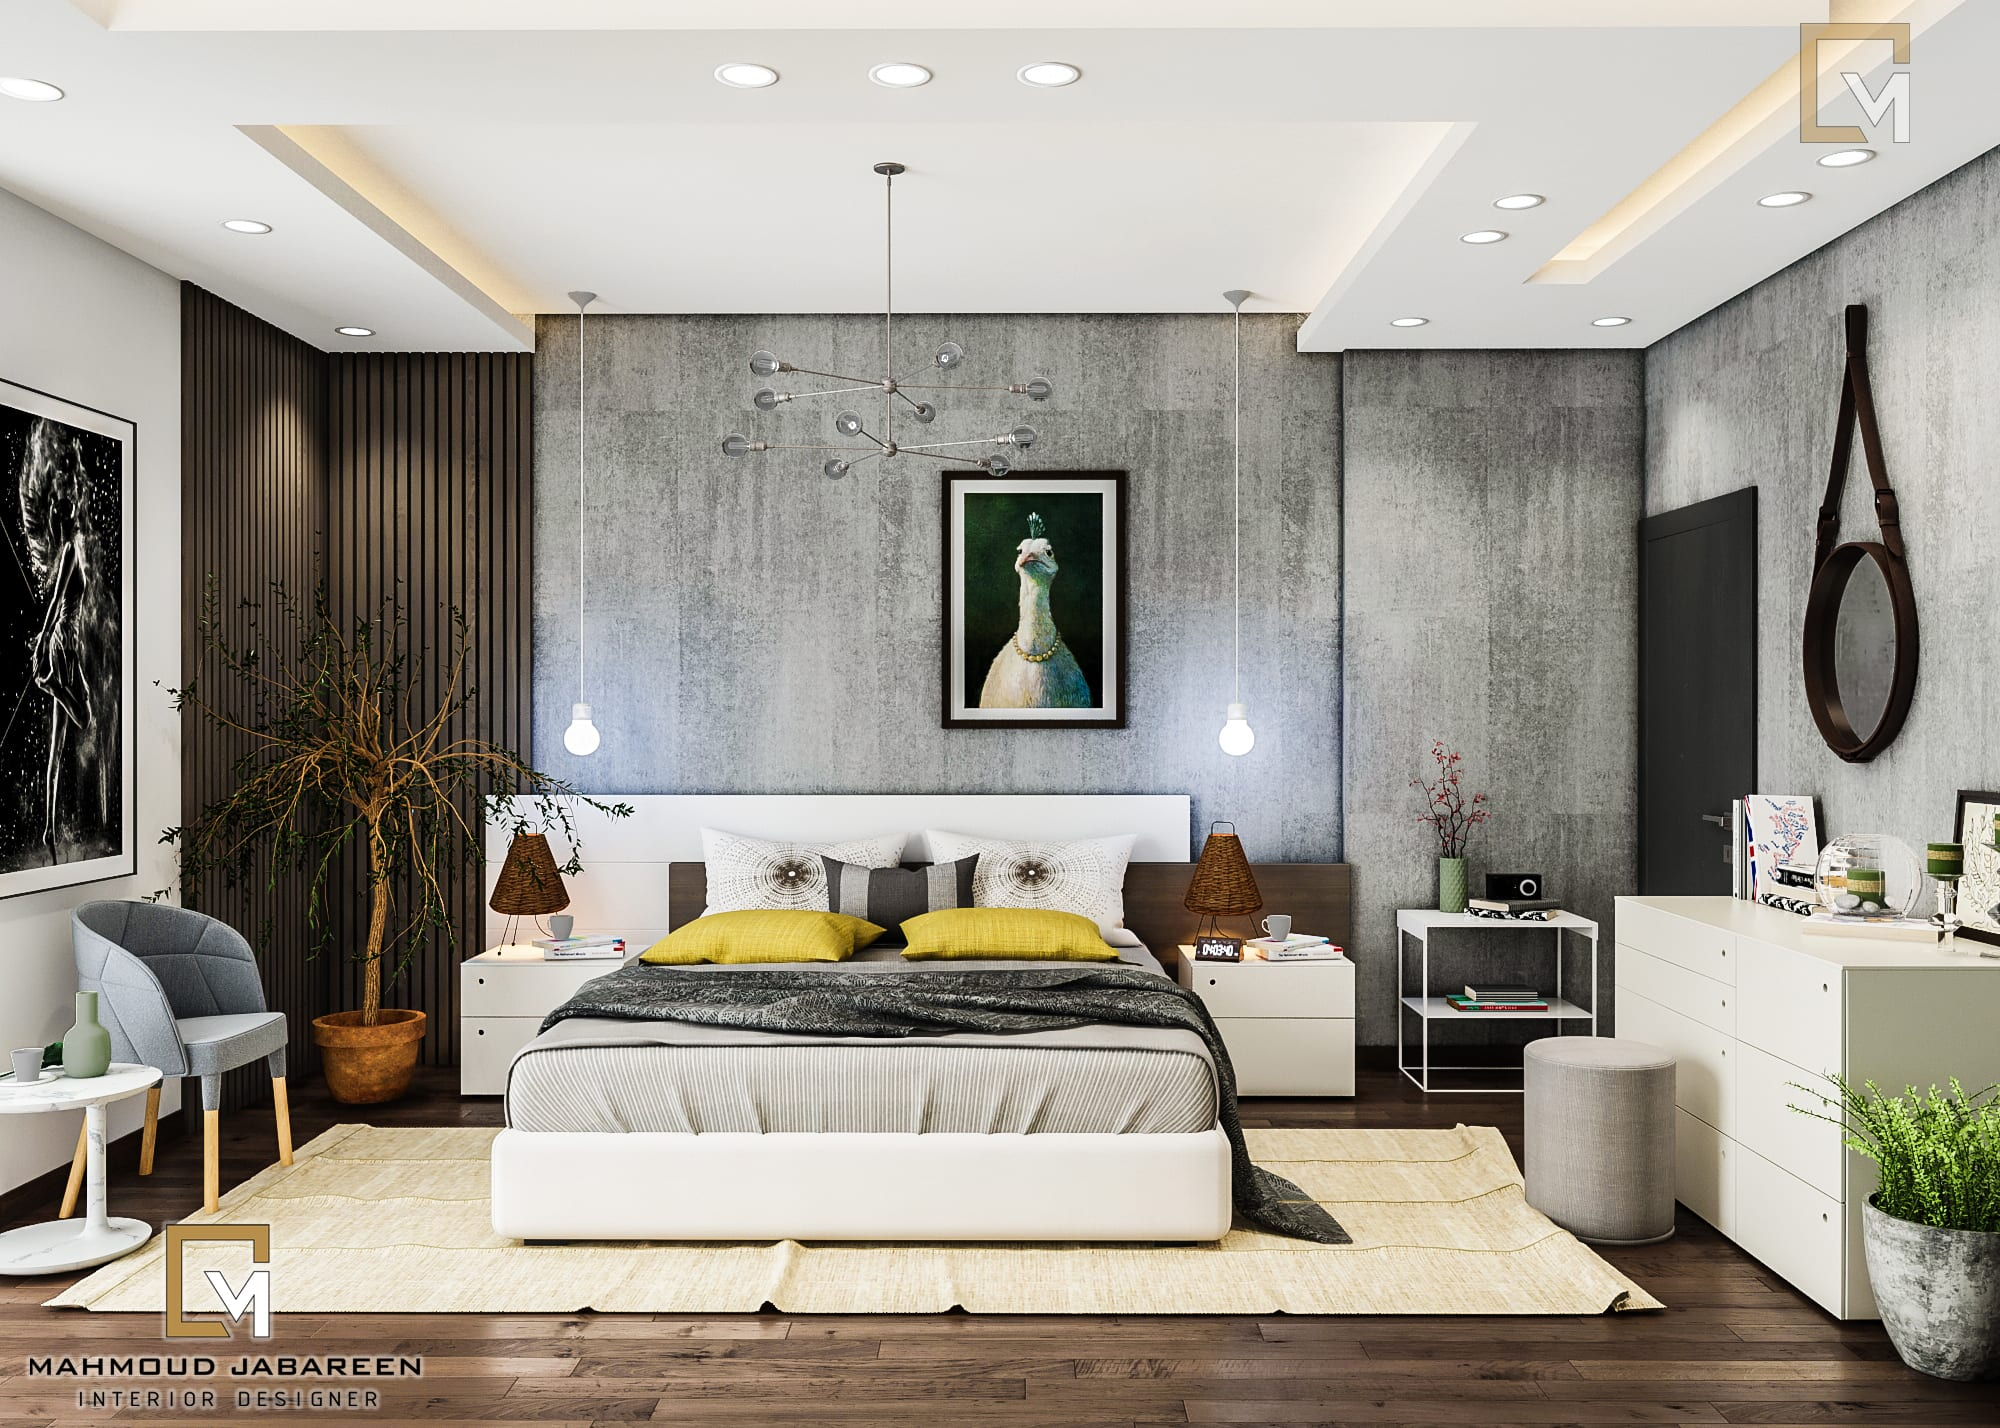 Design A Room Or A House For You Using 3d Max By Mahmoudjabareen